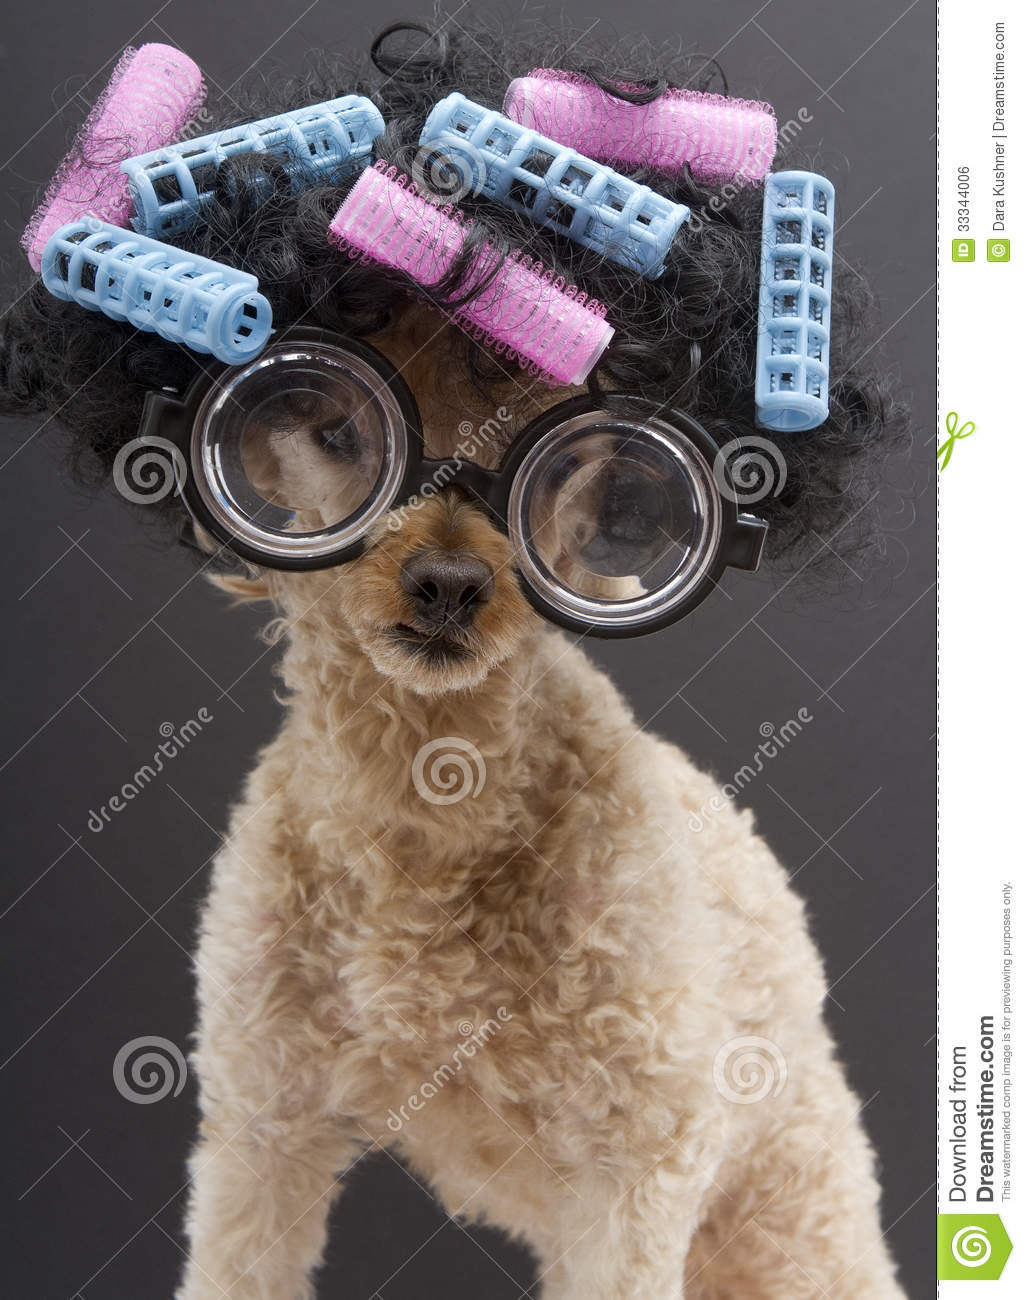 Big Glasses Hair And Curlers Royalty Free Stock Image